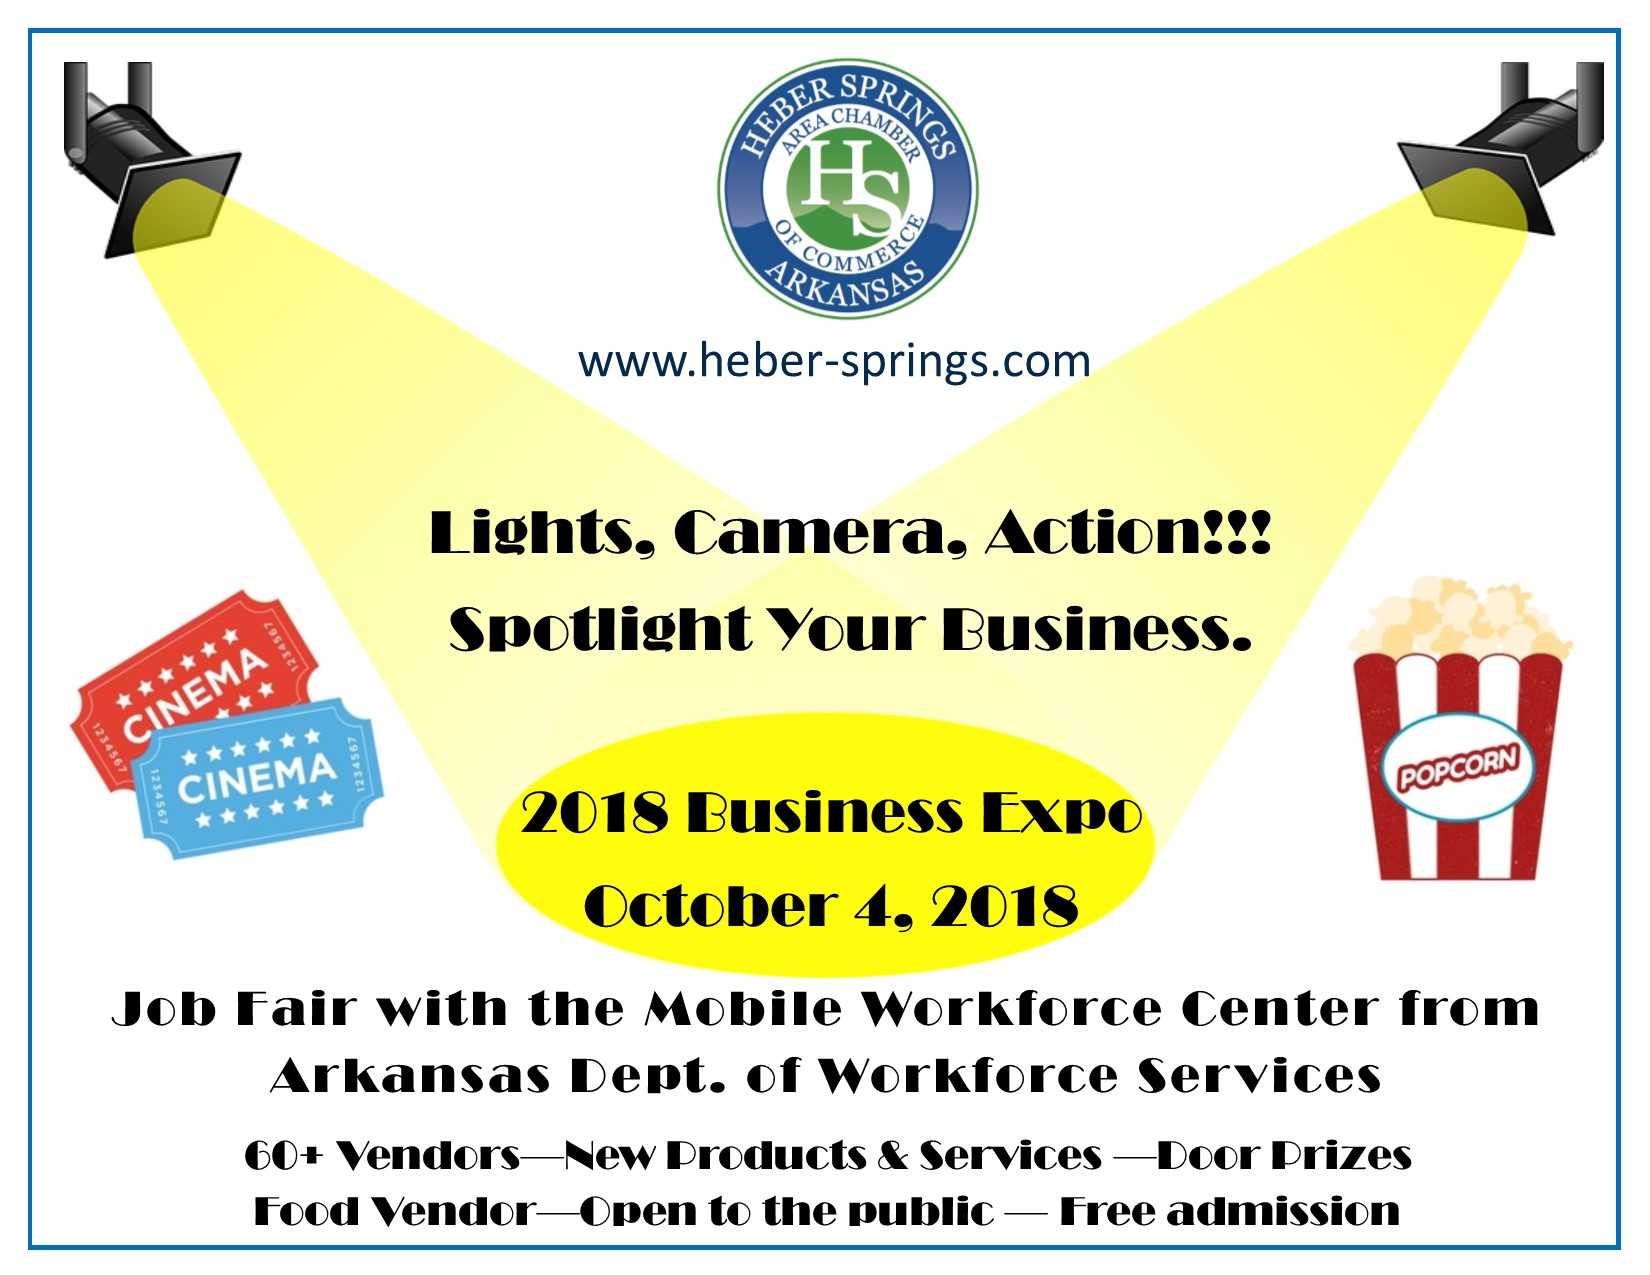 16th Annual Business Expo